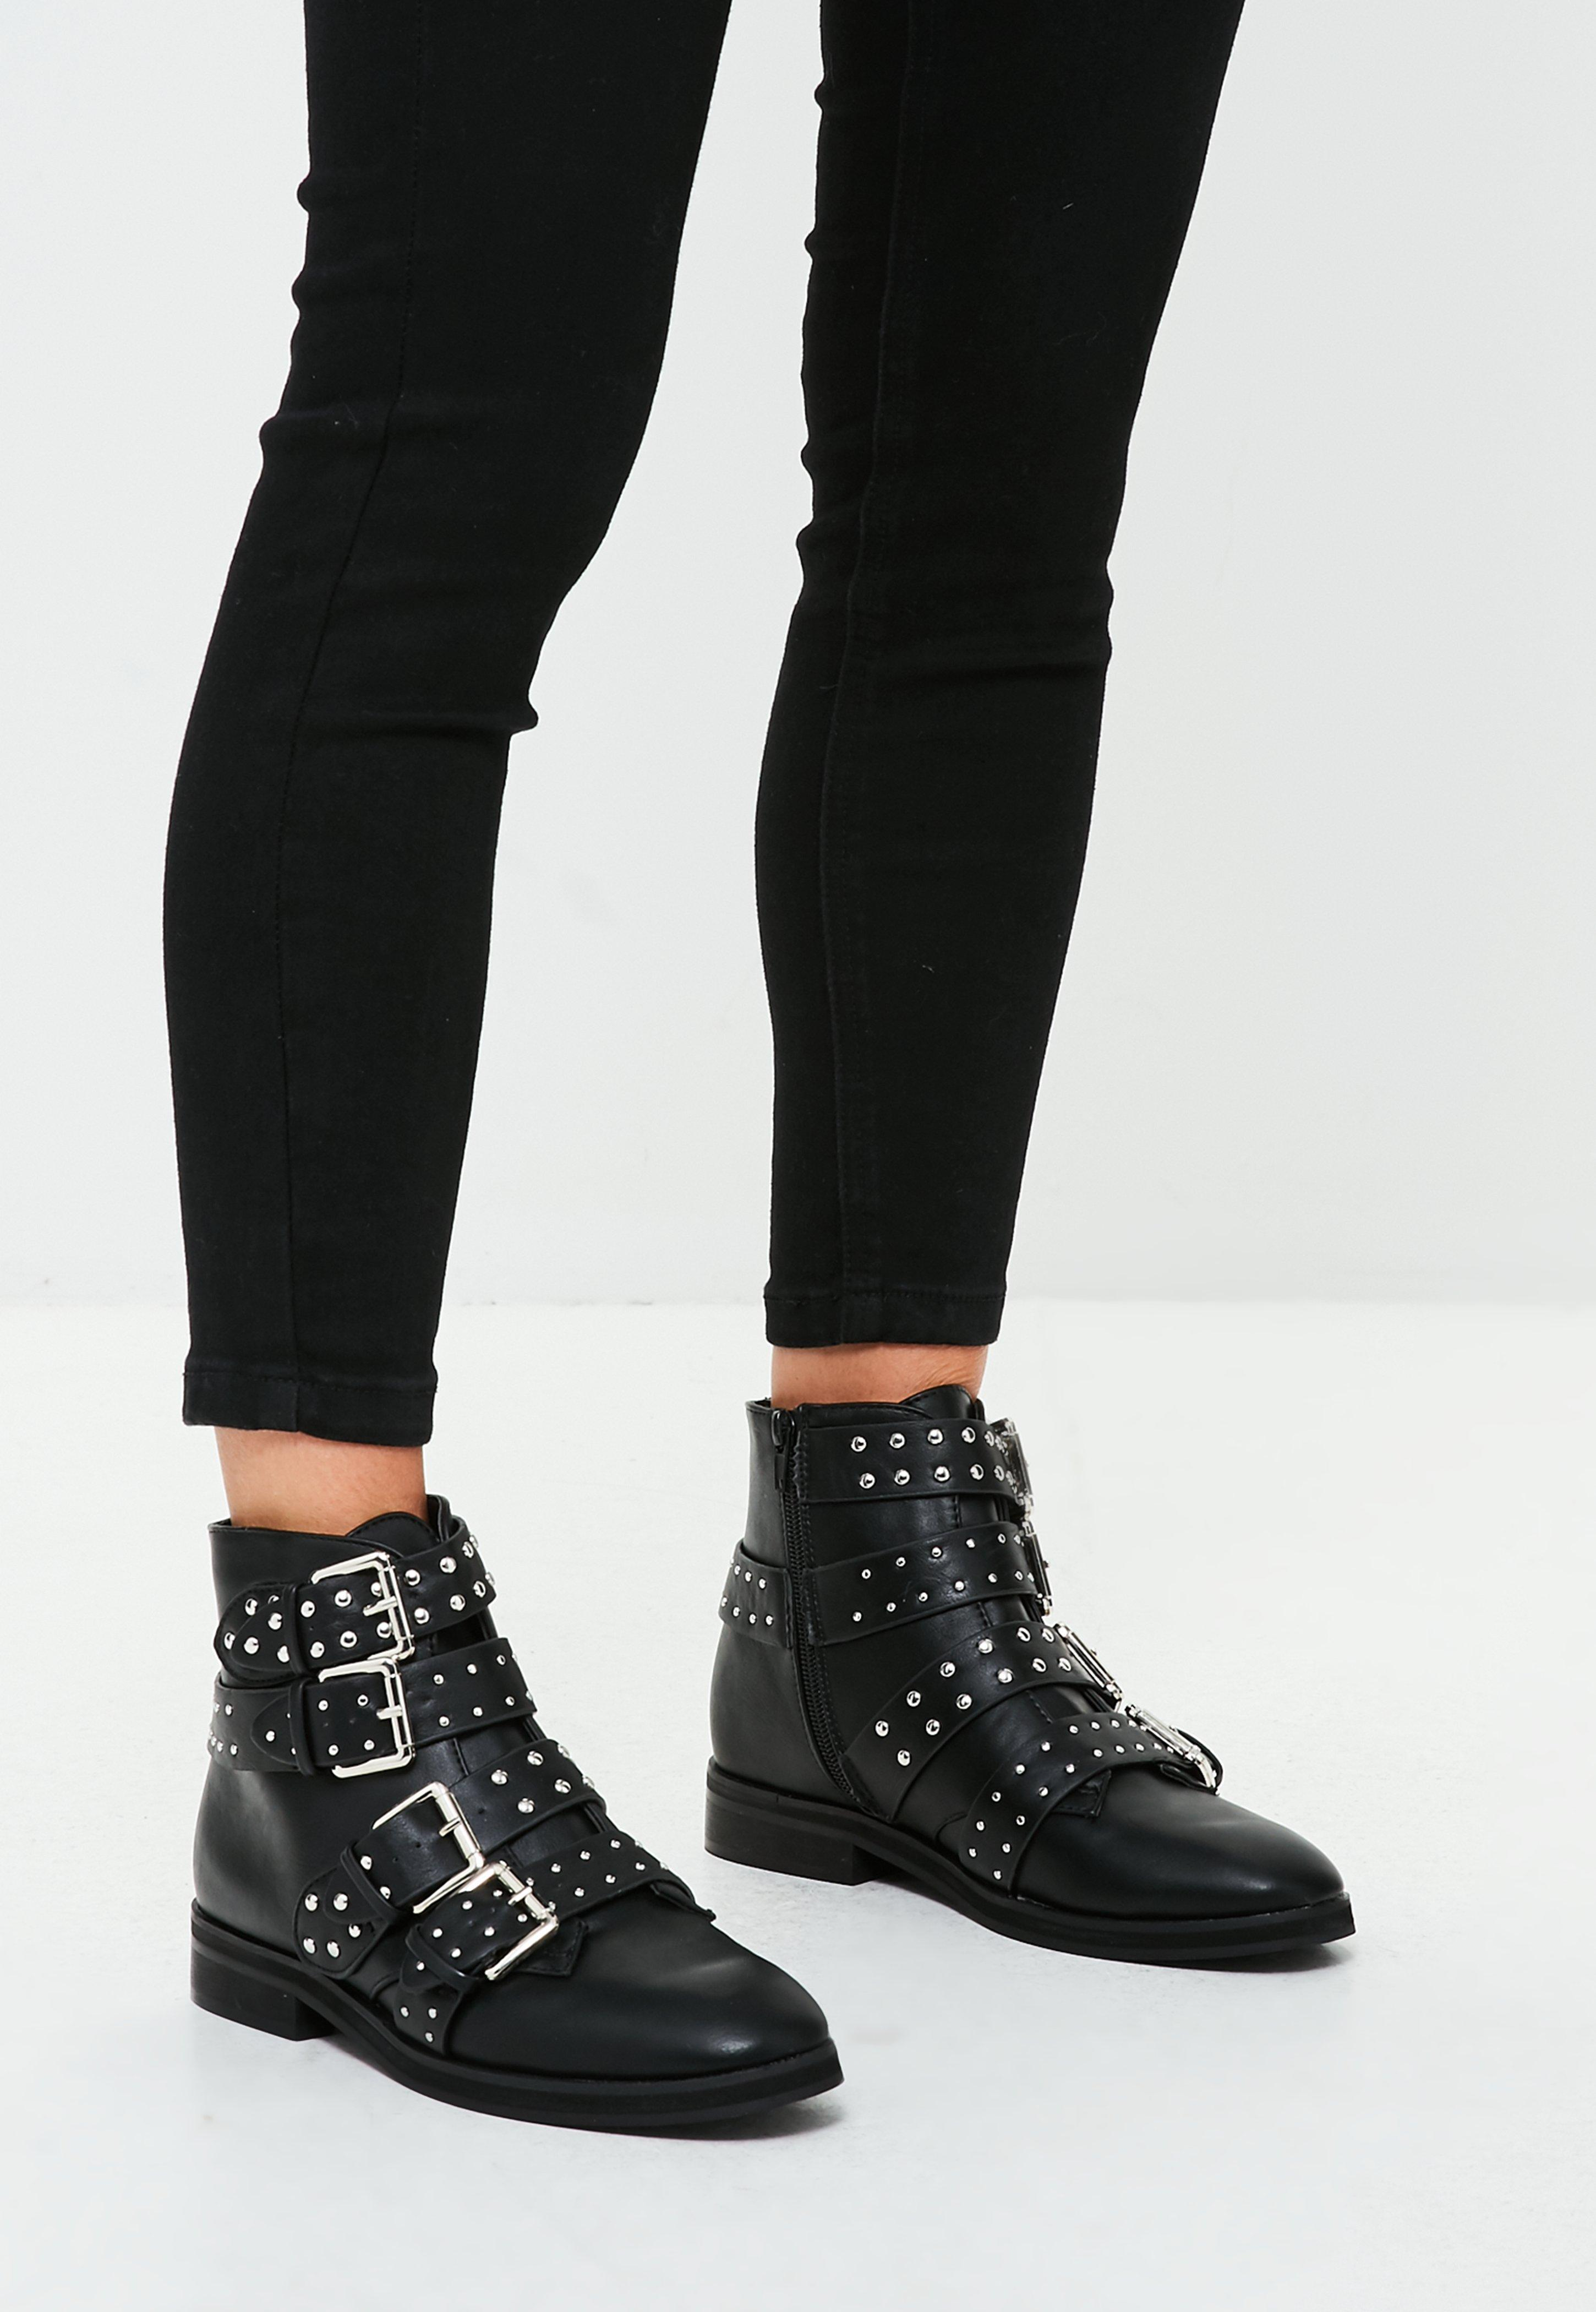 buckle strap detailed ankle boots Great Deals Cheap Price Looking For For Sale Outlet Sast IiVCt